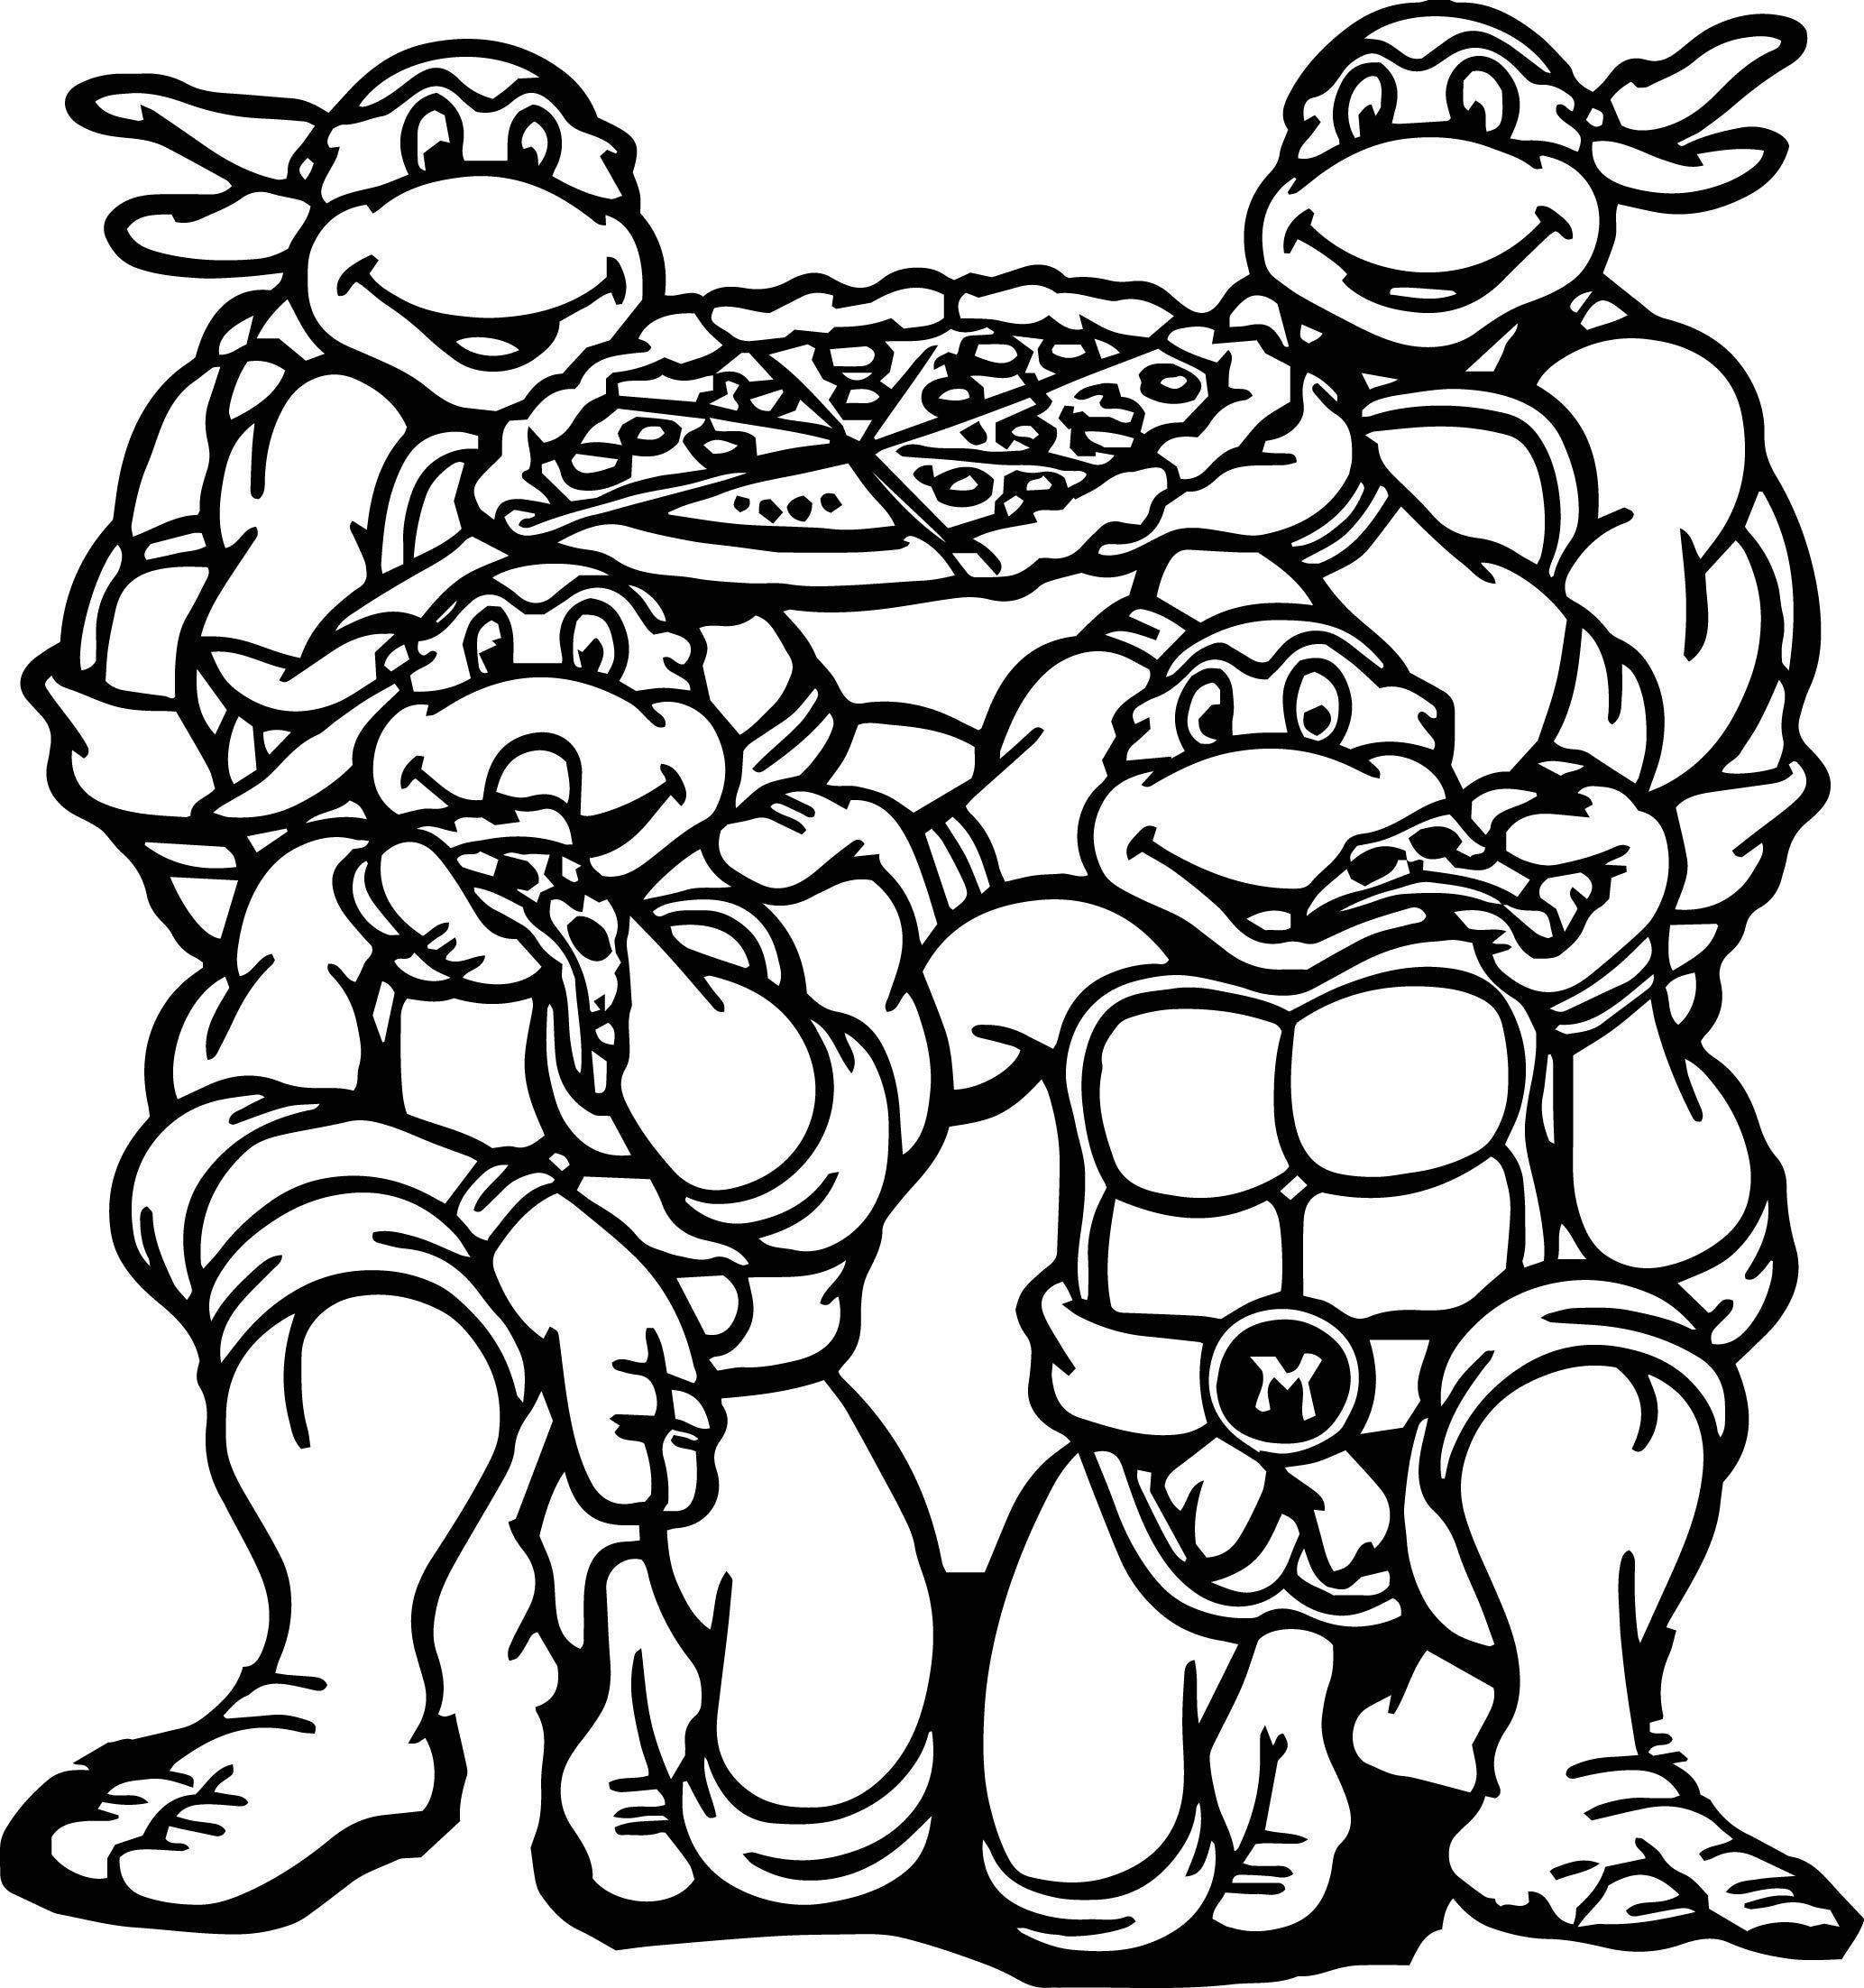 ninja turtle coloring pages for kids ninja turtles cartoon coloring pages 2 o teenage mutant for coloring kids turtle pages ninja